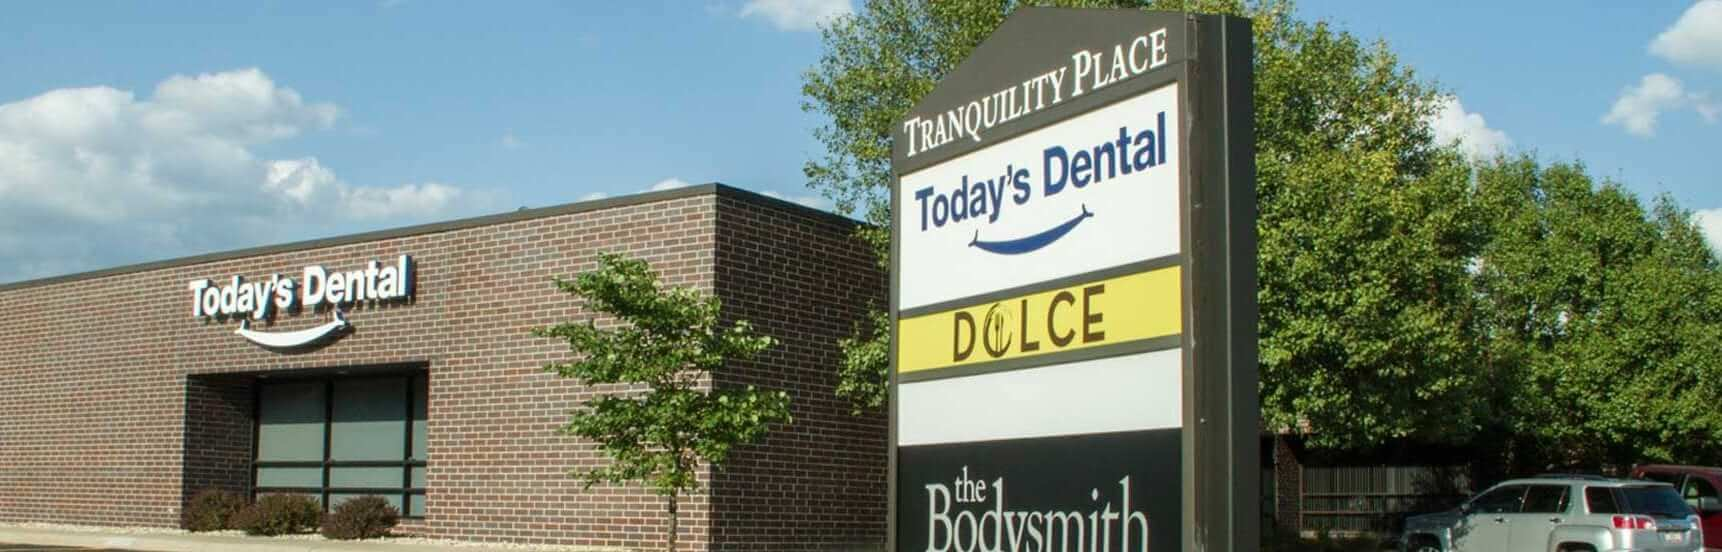 Today's Dental Tranquility Park